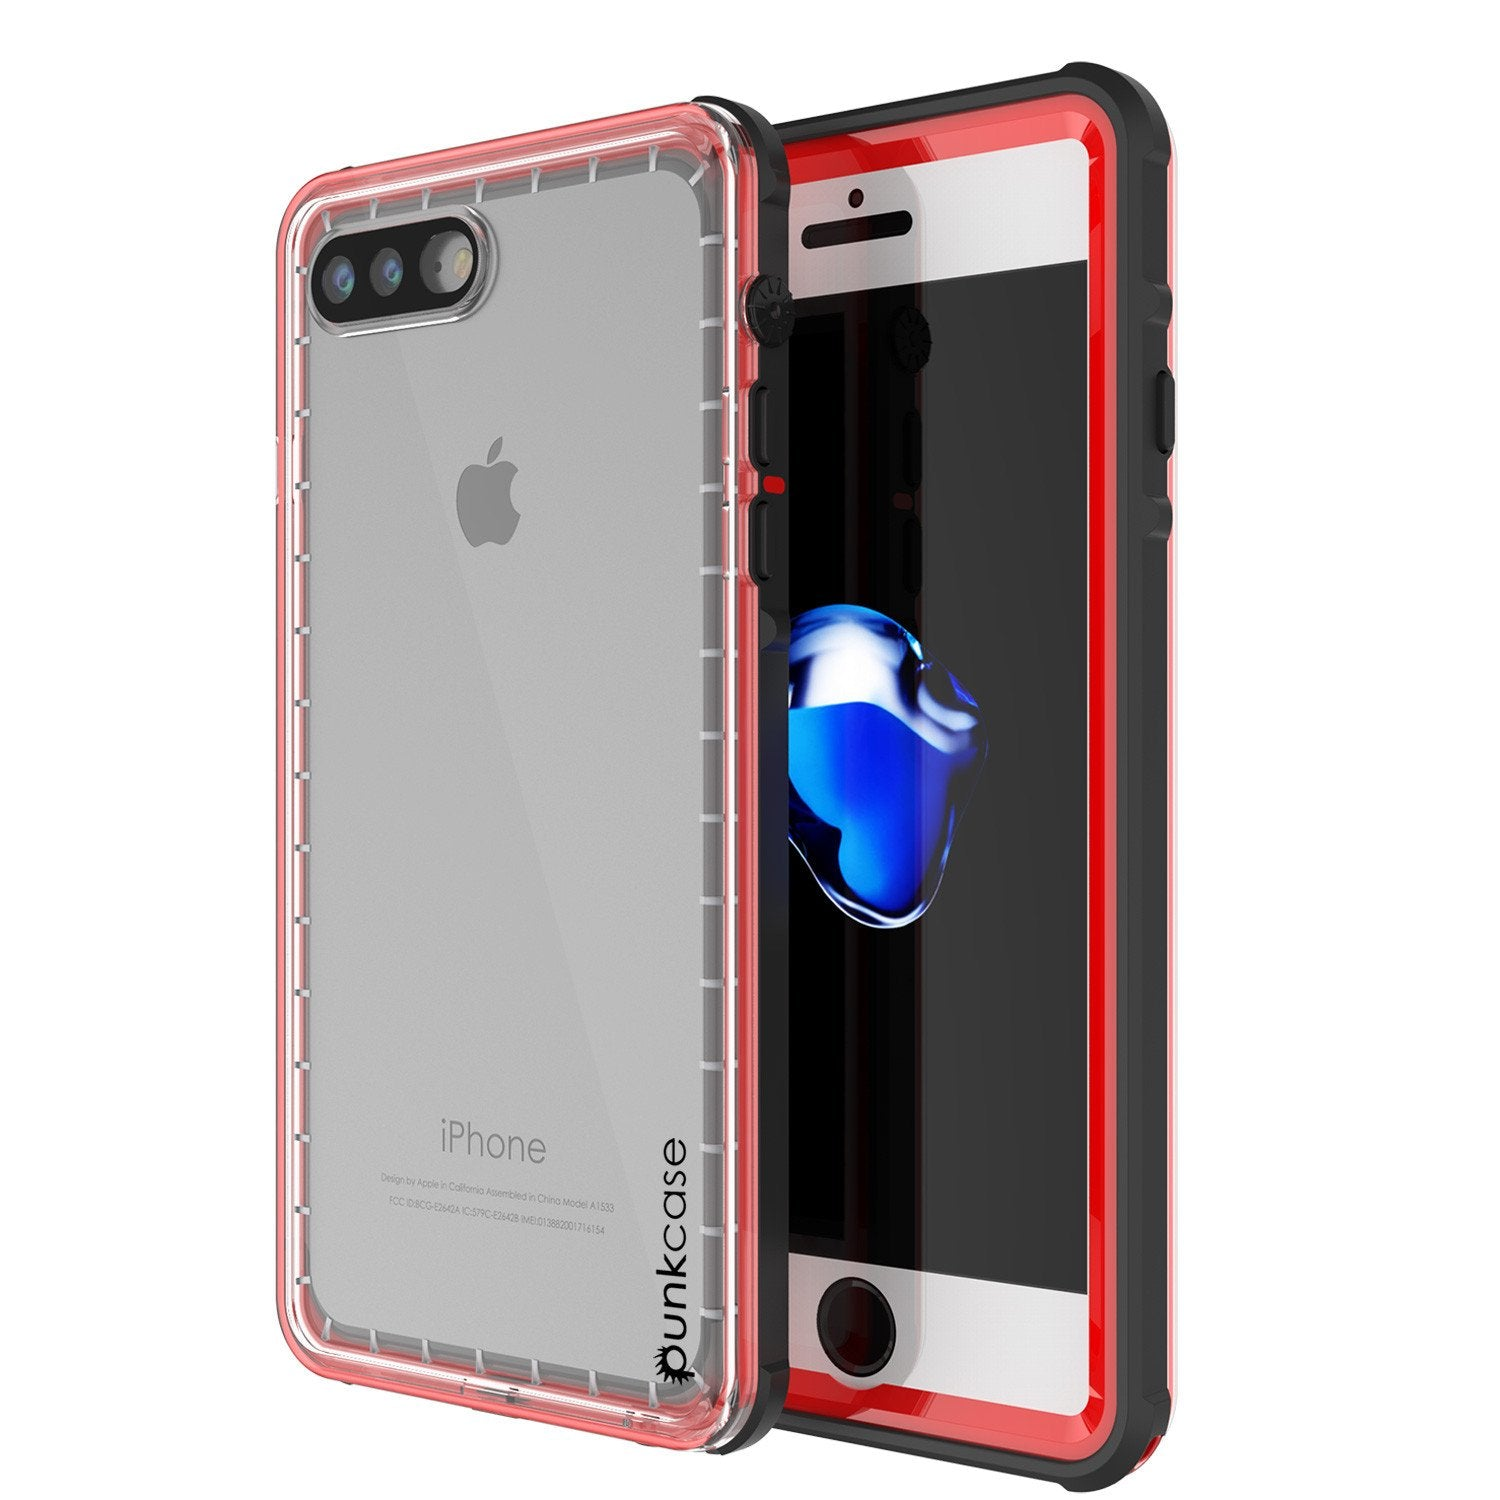 buy online 6e454 ad459 iPhone 8+ Plus Waterproof Case, PUNKcase CRYSTAL Red W/ Attached Screen  Protector | Warranty